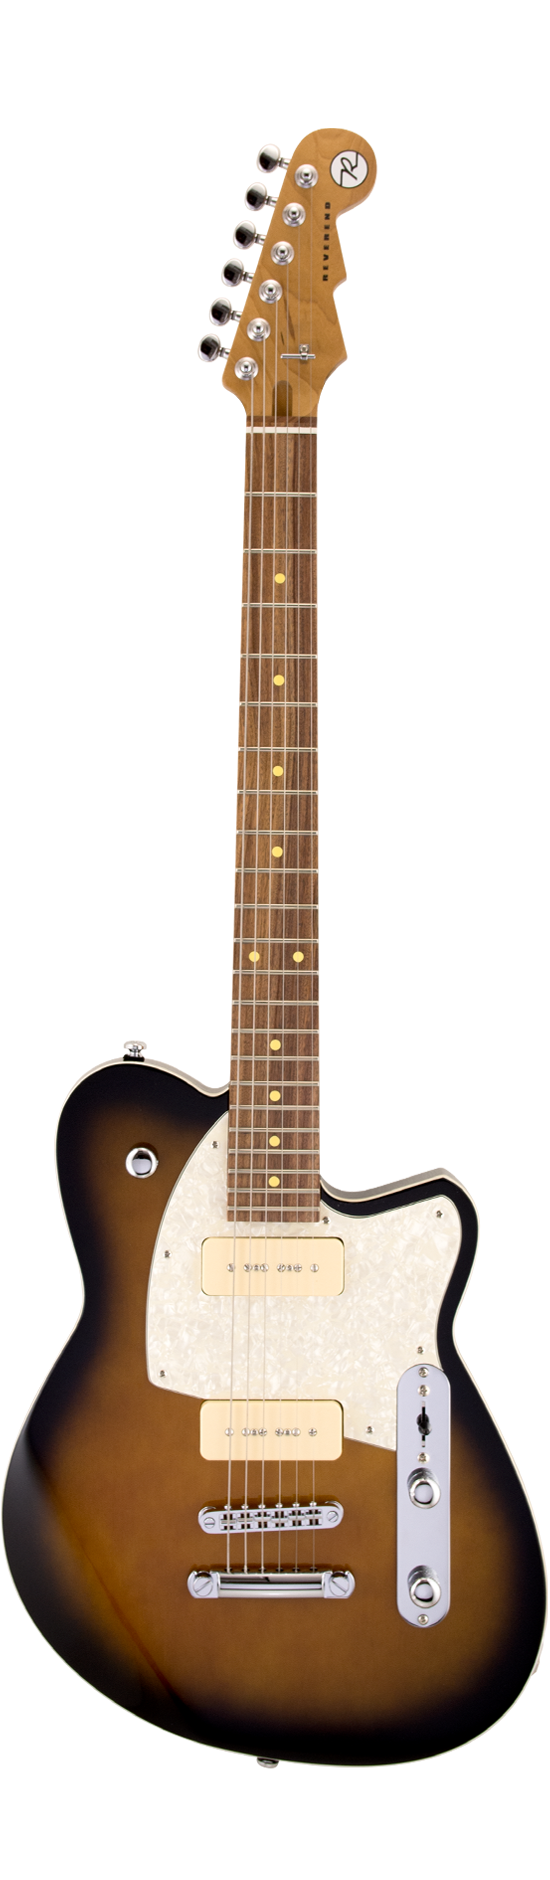 Reverend Guitars Charger 290 Coffee Burst